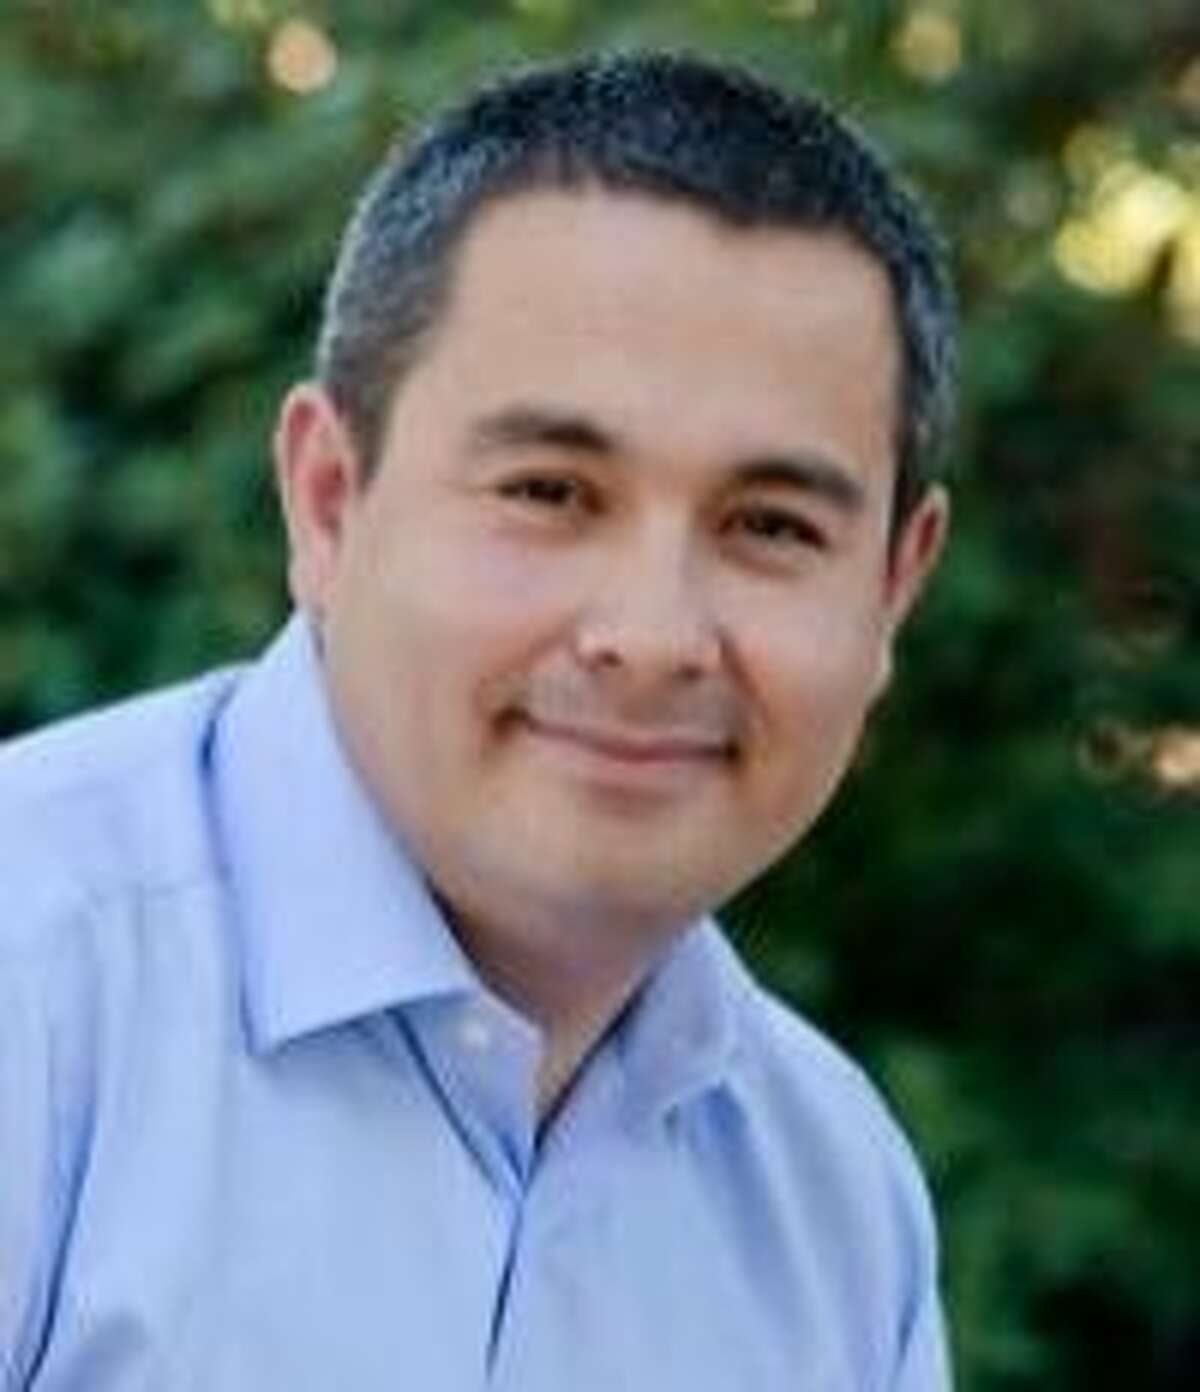 Victor A. Rodriguez, 42, of Oakland, was appointed to a judgeship in the Alameda County Superior Court by Governor Jerry Brown in December 2017.